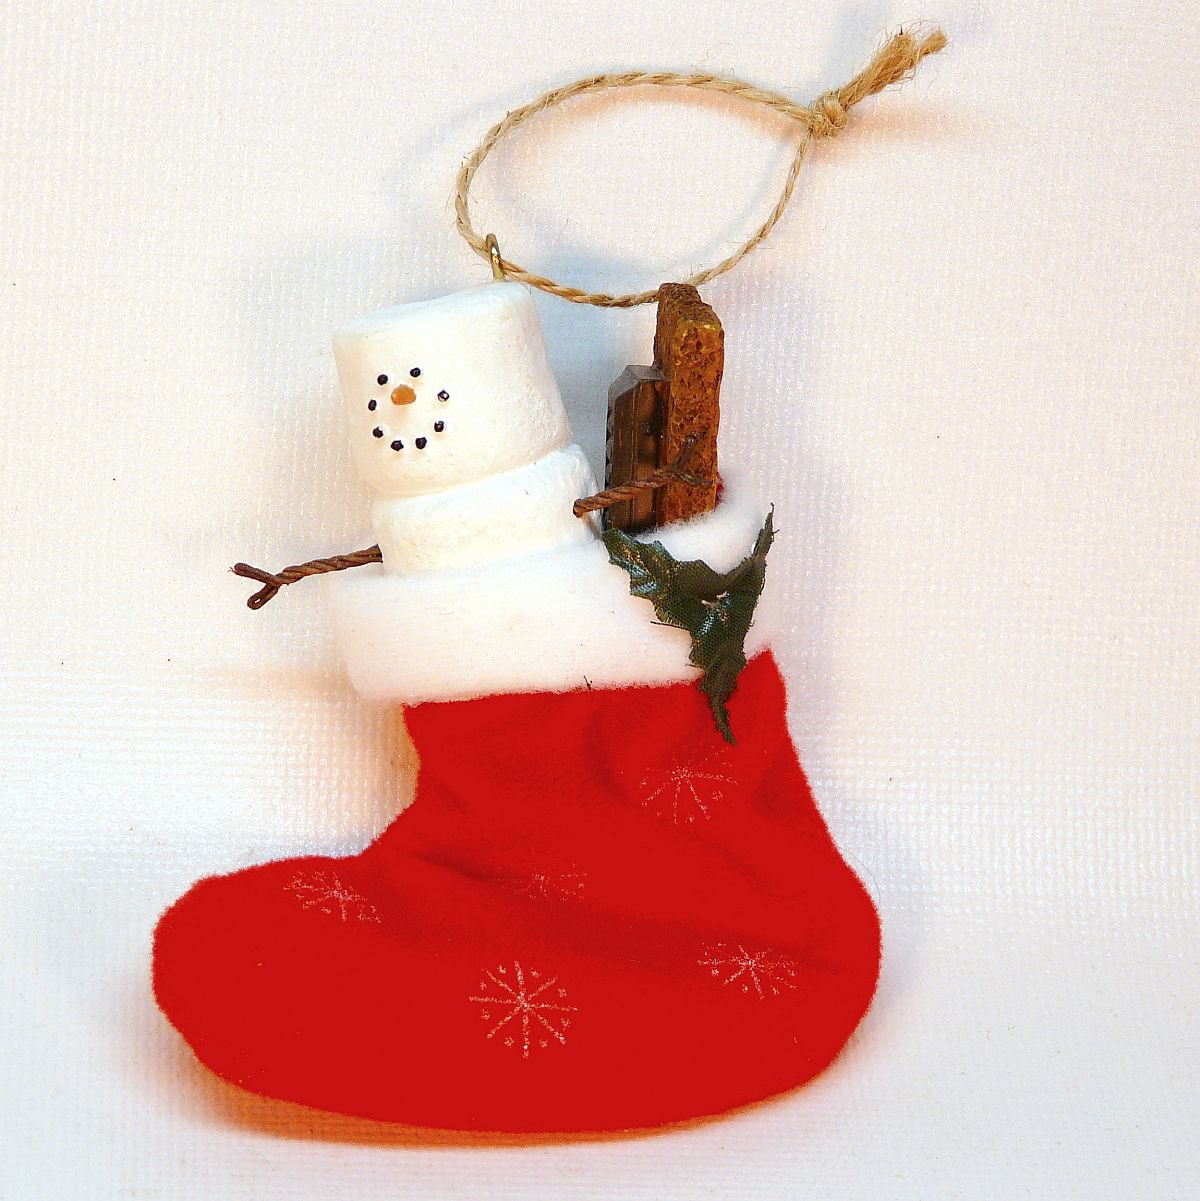 Jan Hagara Figurines For Sale: Smores Snowman In Stocking Christmas Ornament S'mores